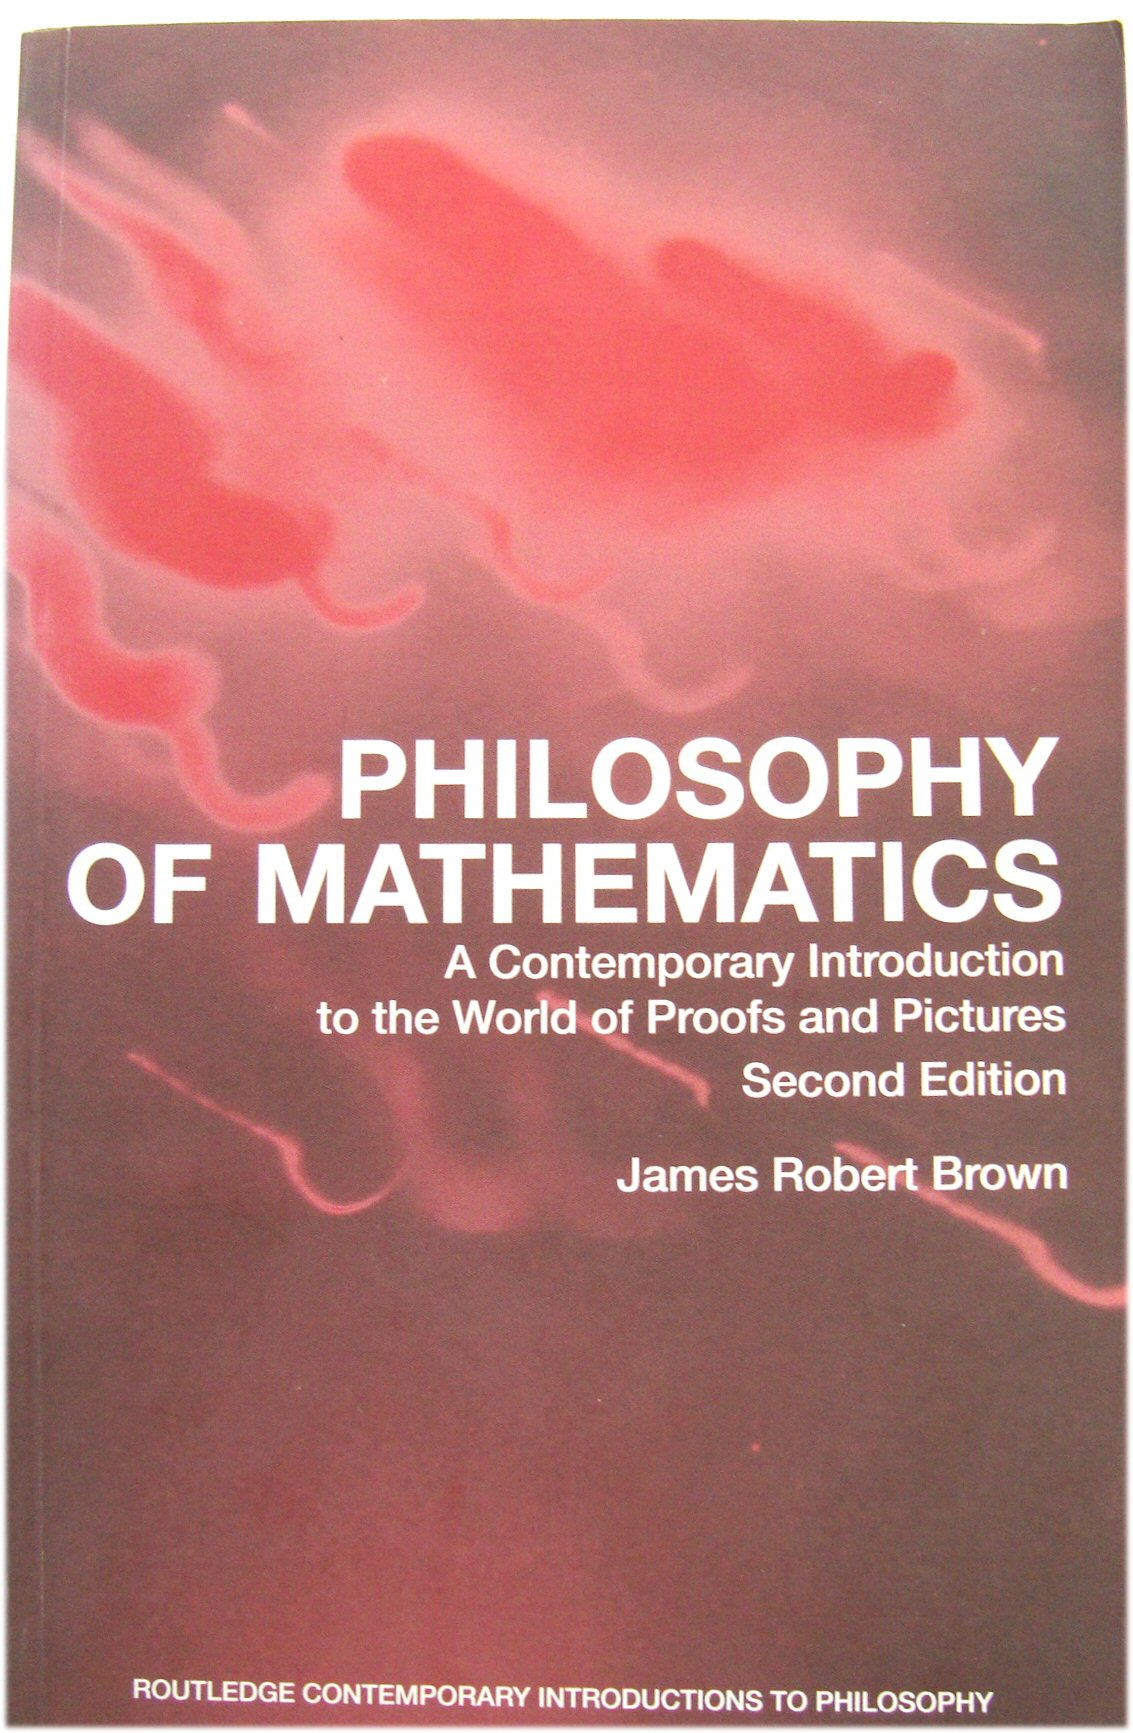 Image for Philosophy of Mathematics: A Contemporary Introduction to the World of Proofs and Pictures